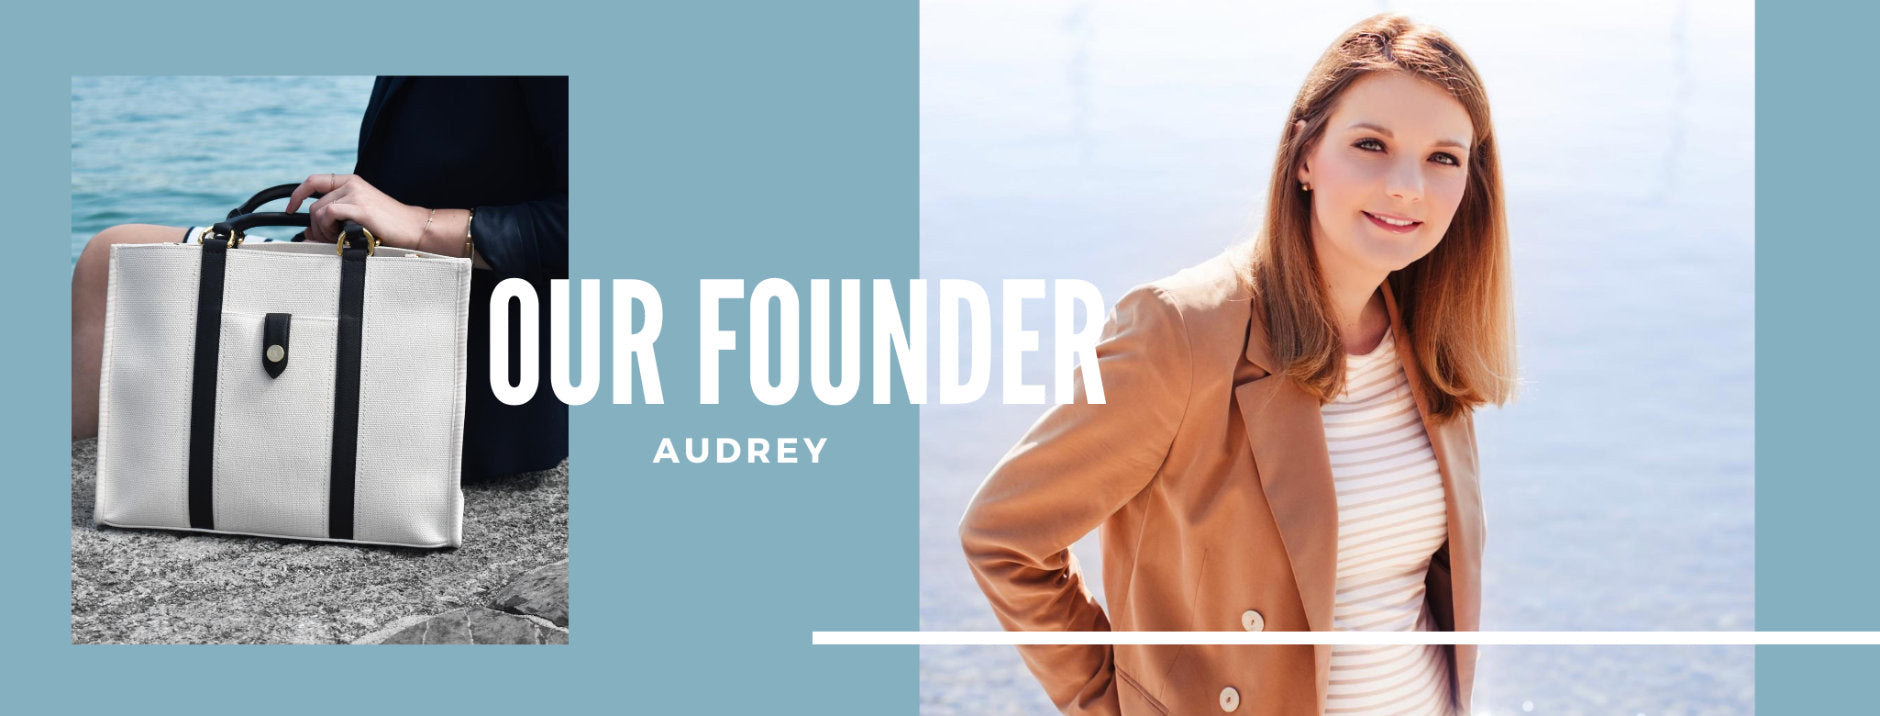 Audrey, our founder